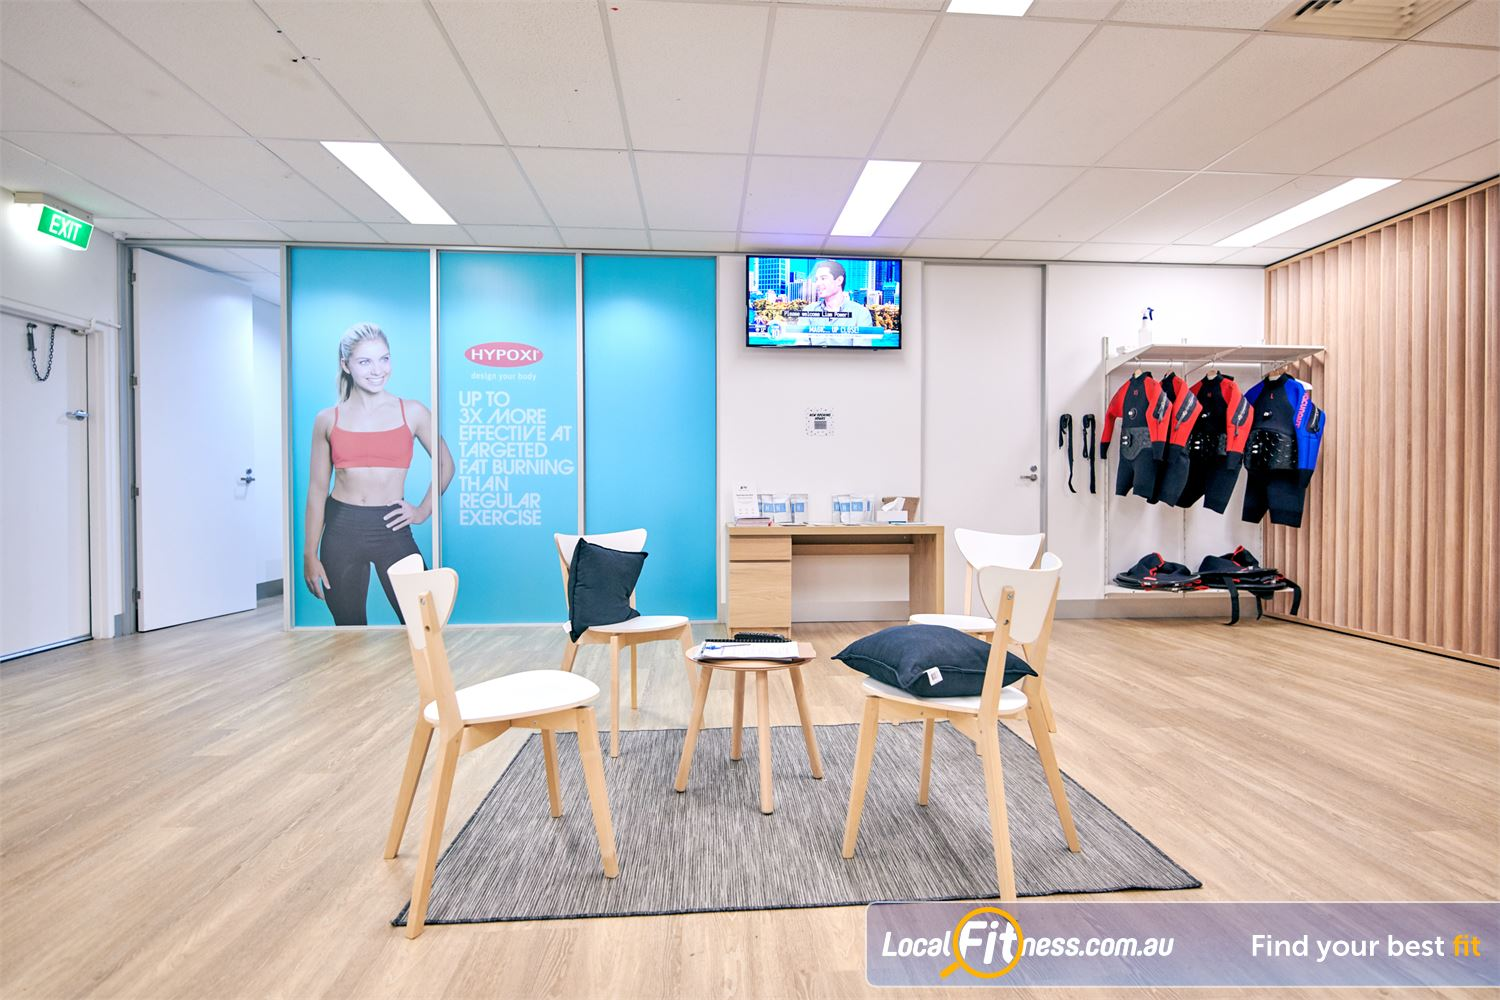 HYPOXI Weight Loss Near Burwood East Our Glen Waverley HYPOXI-Coaches will sit with you to determine your weight loss goals.